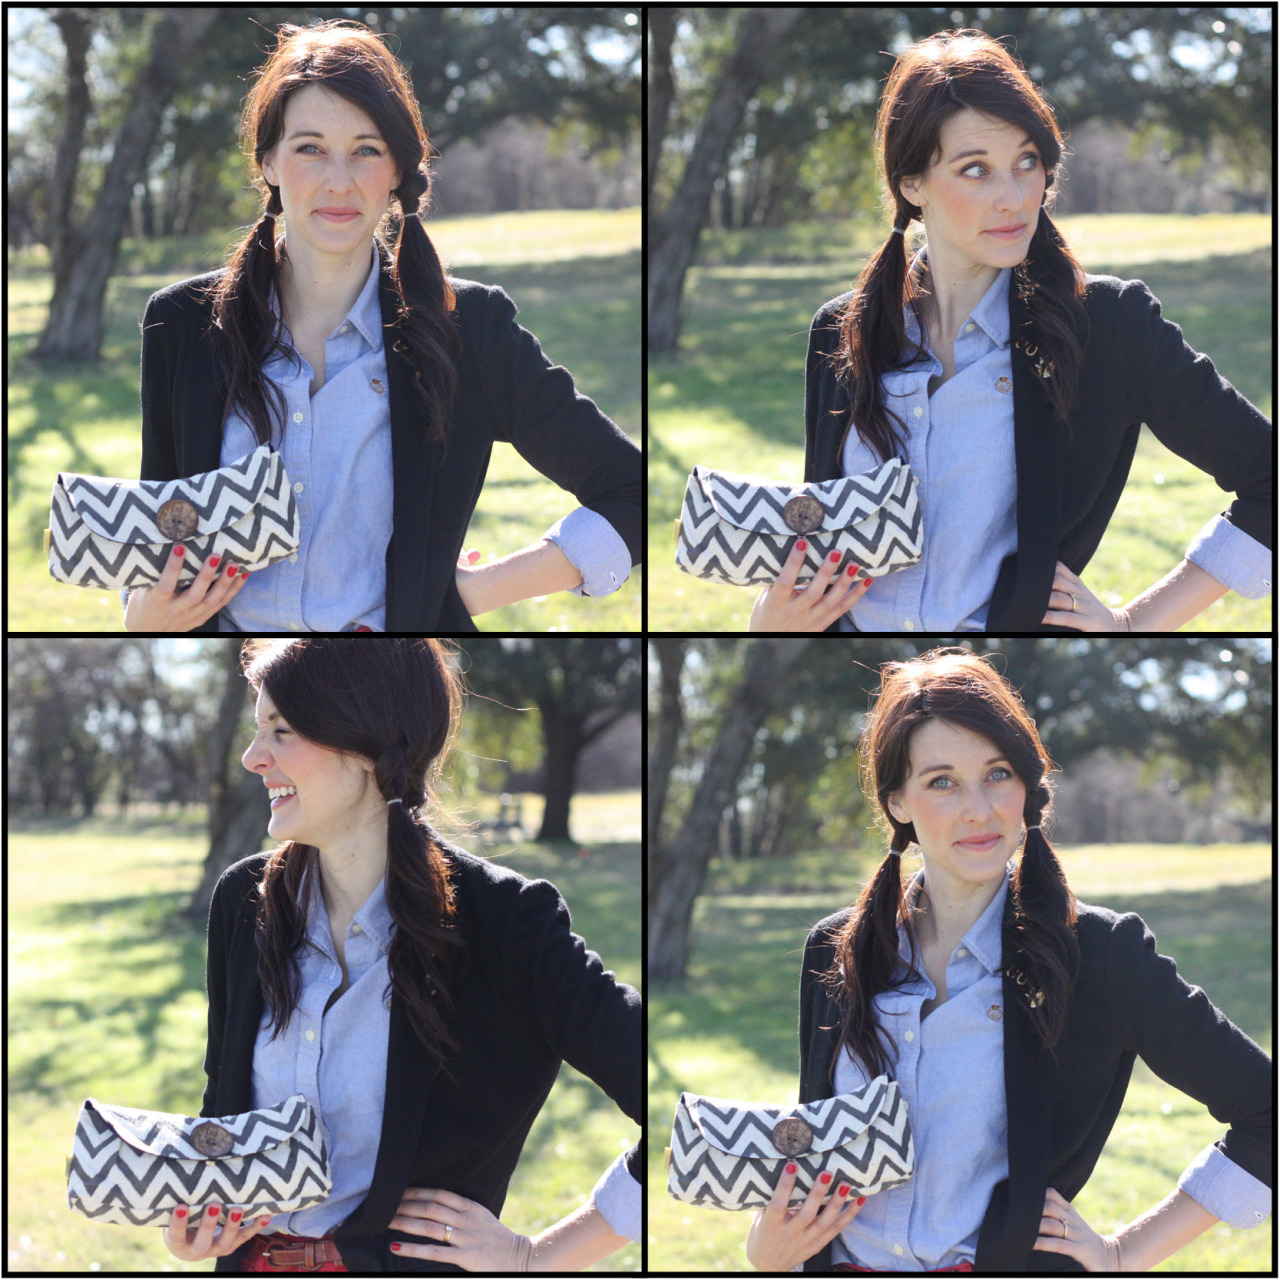 The lovely Chevron Button Clutch in gray is BACK! Get yours while you can! http://www.purseandclutch.com/collections/clutches/products/chevron-button-clutch-1